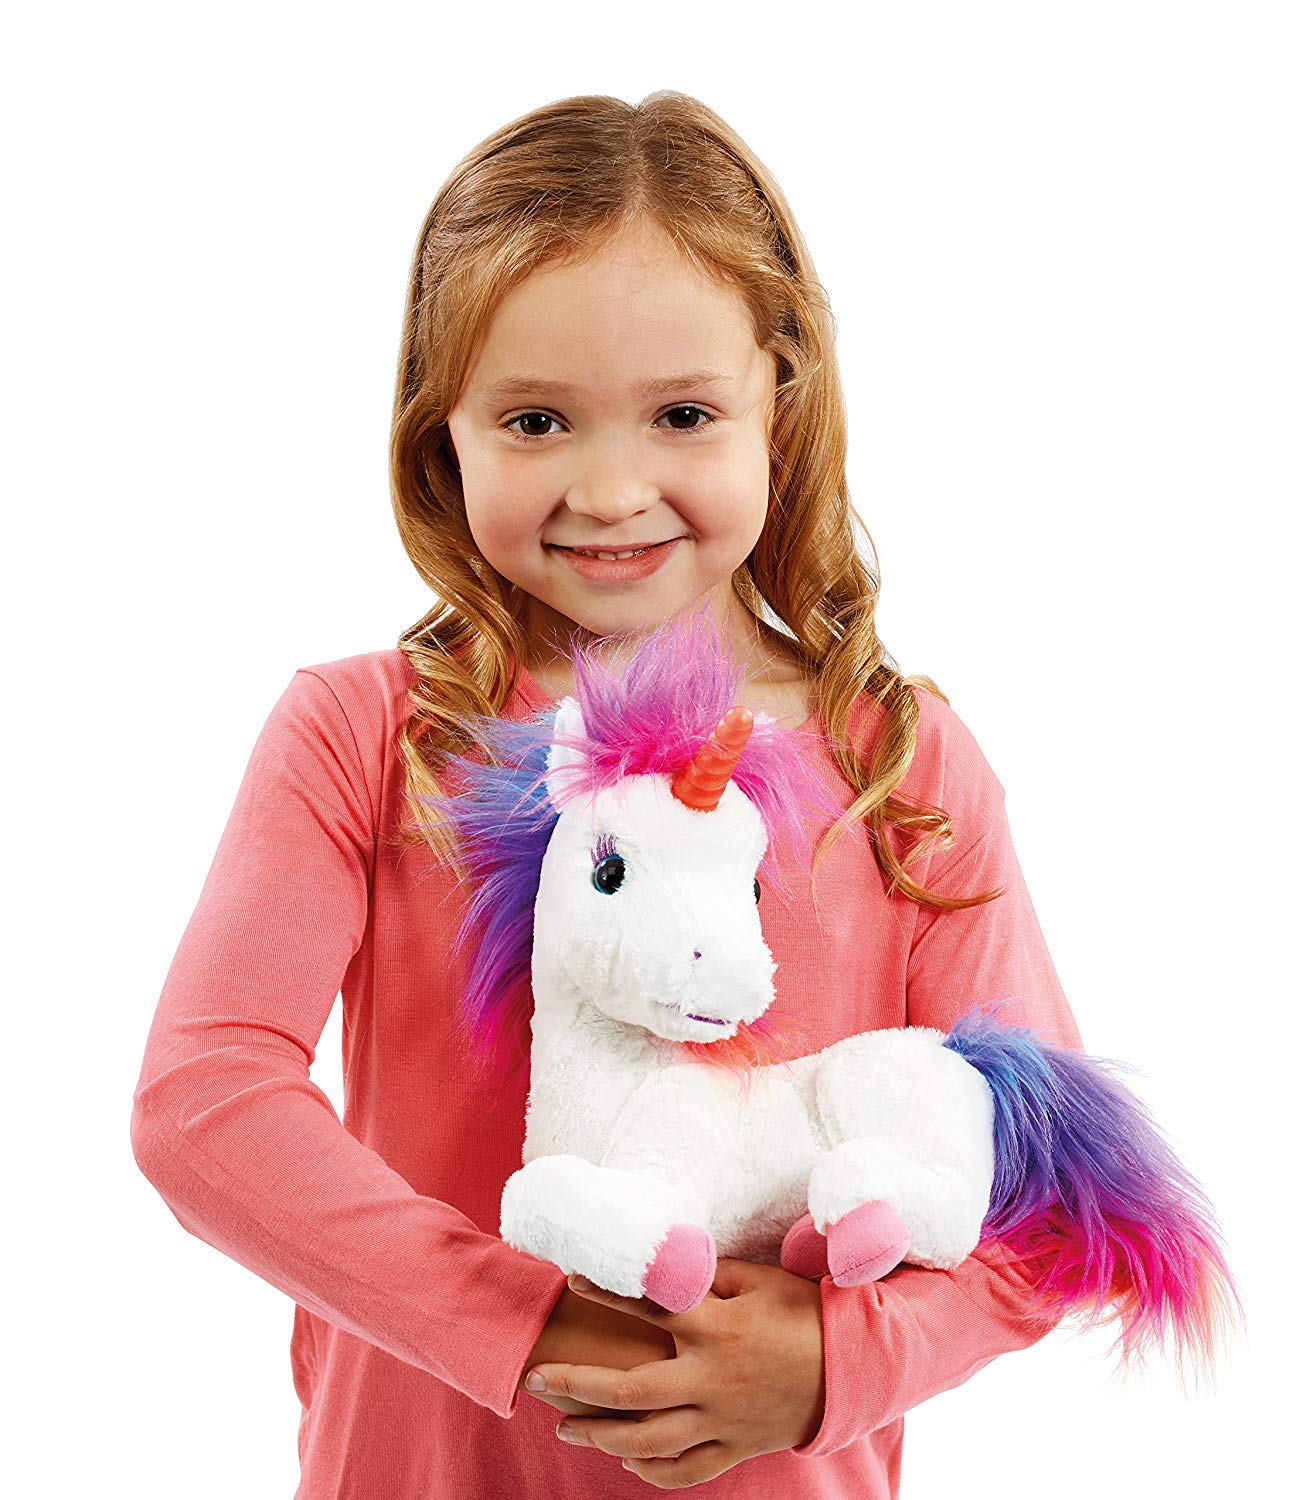 Animagic Rainbow - My Glowing Unicorn, a Soft Unicorn Plush Toy with Glowing Horn and Unicorn Sounds 7